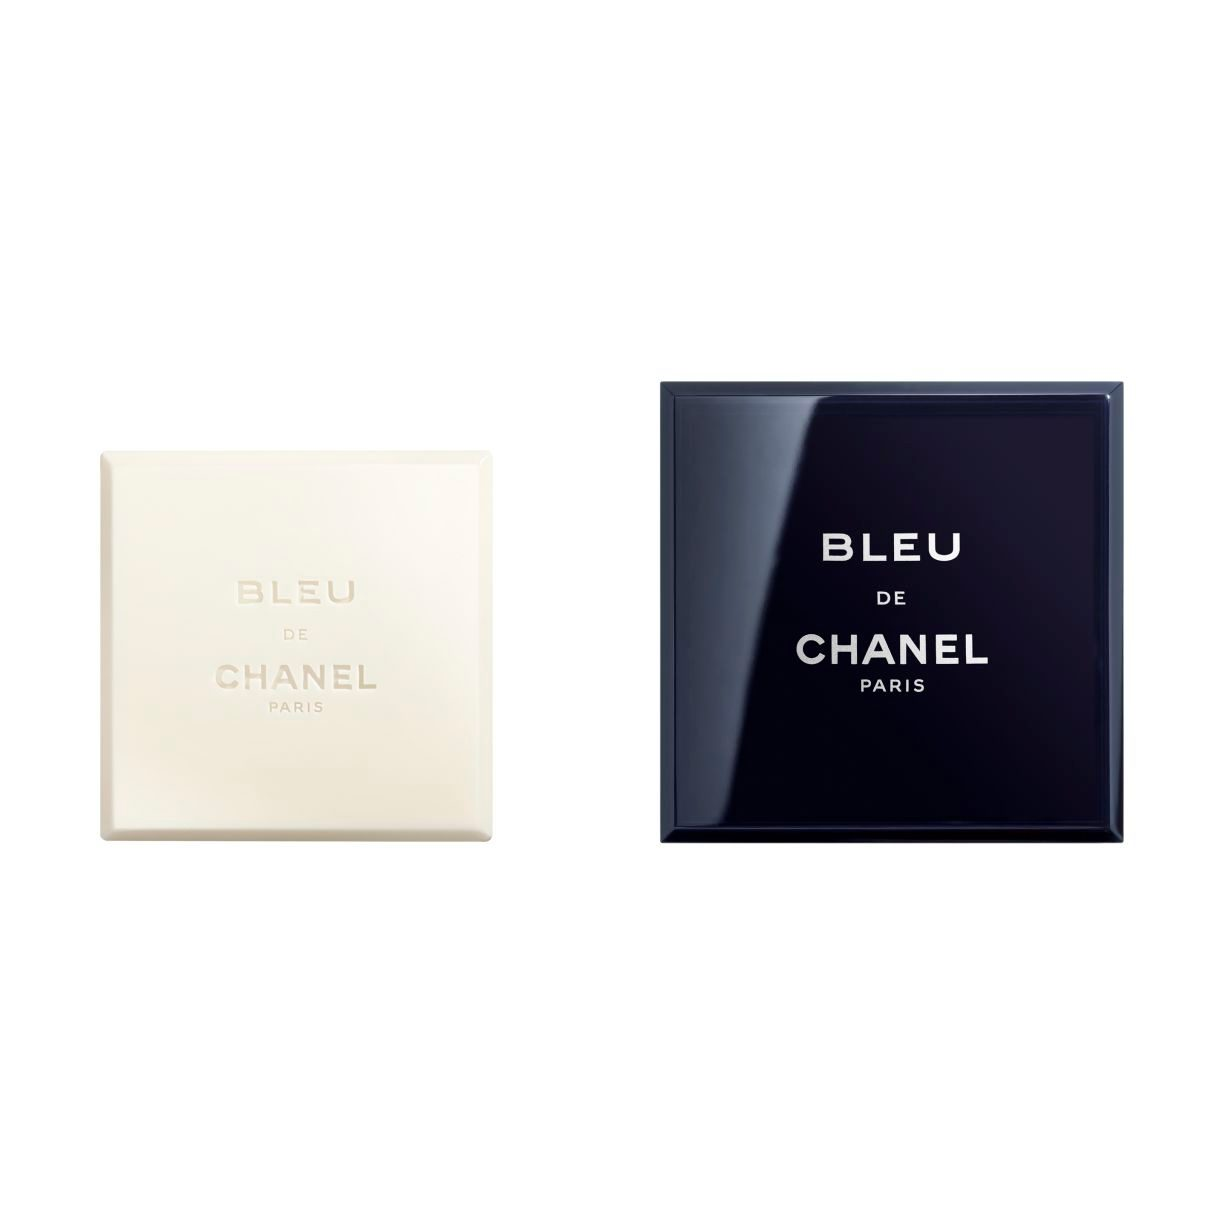 BLEU DE CHANEL LUXURY SOAP